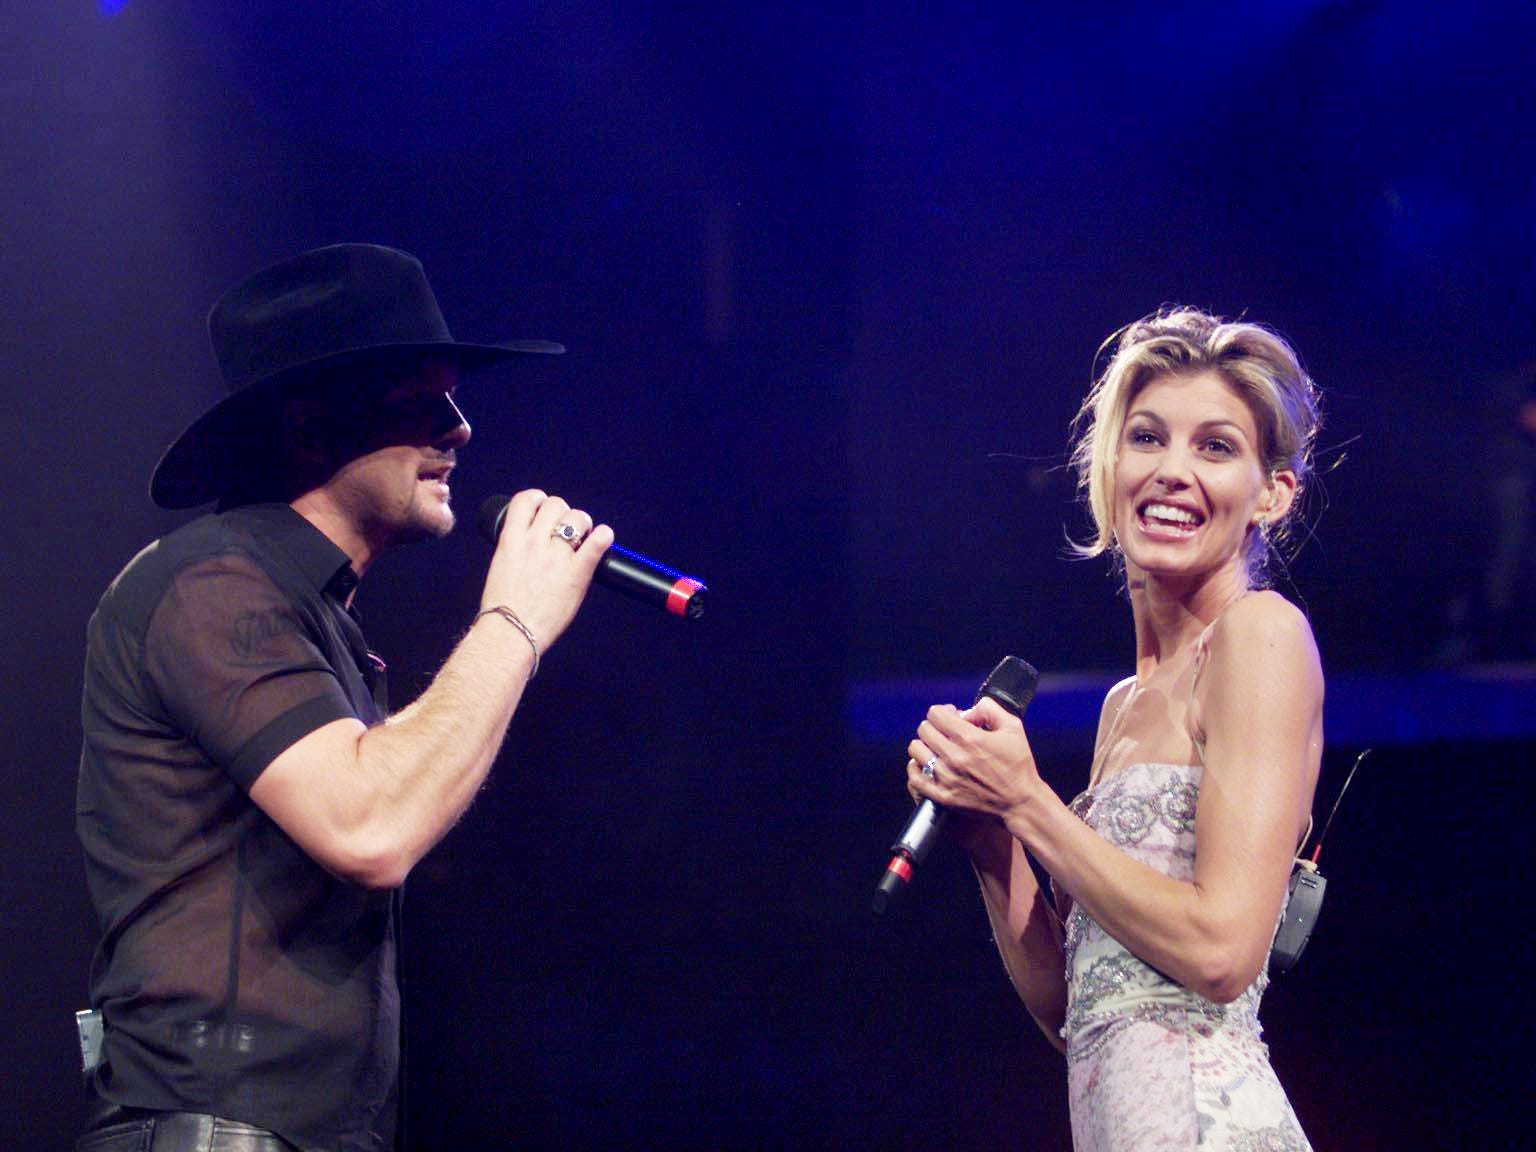 Tim McGraw sings to his wife, Faith Hill during their New Year's Eve concert at the GEC Dec. 31, 1999.